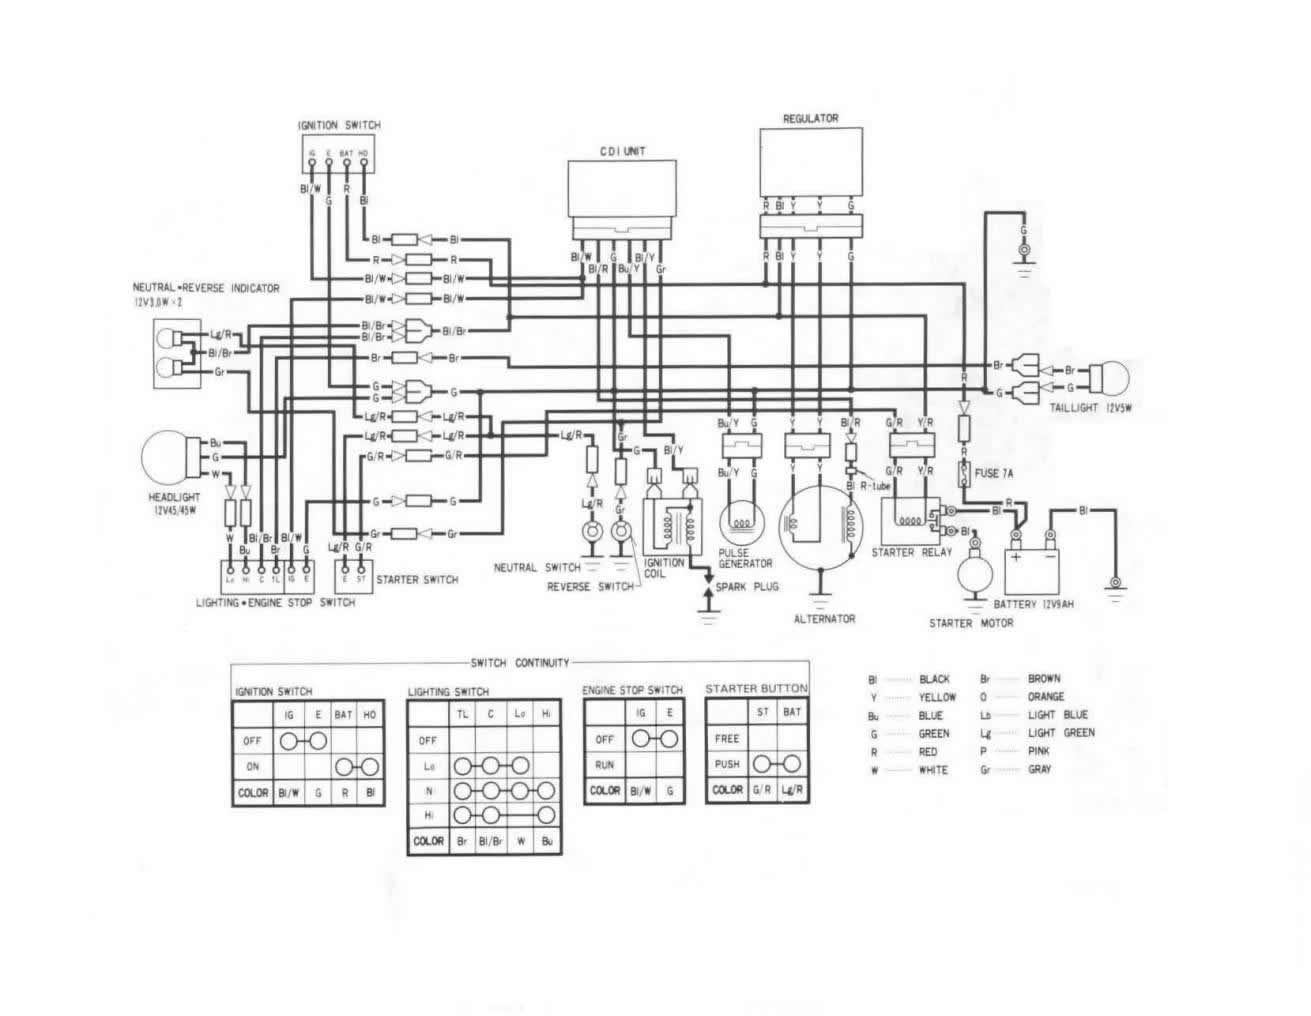 hight resolution of trx 300 wiring diagram wiring library diagram h71989 honda trx 300 wiring diagram the uptodate wiring